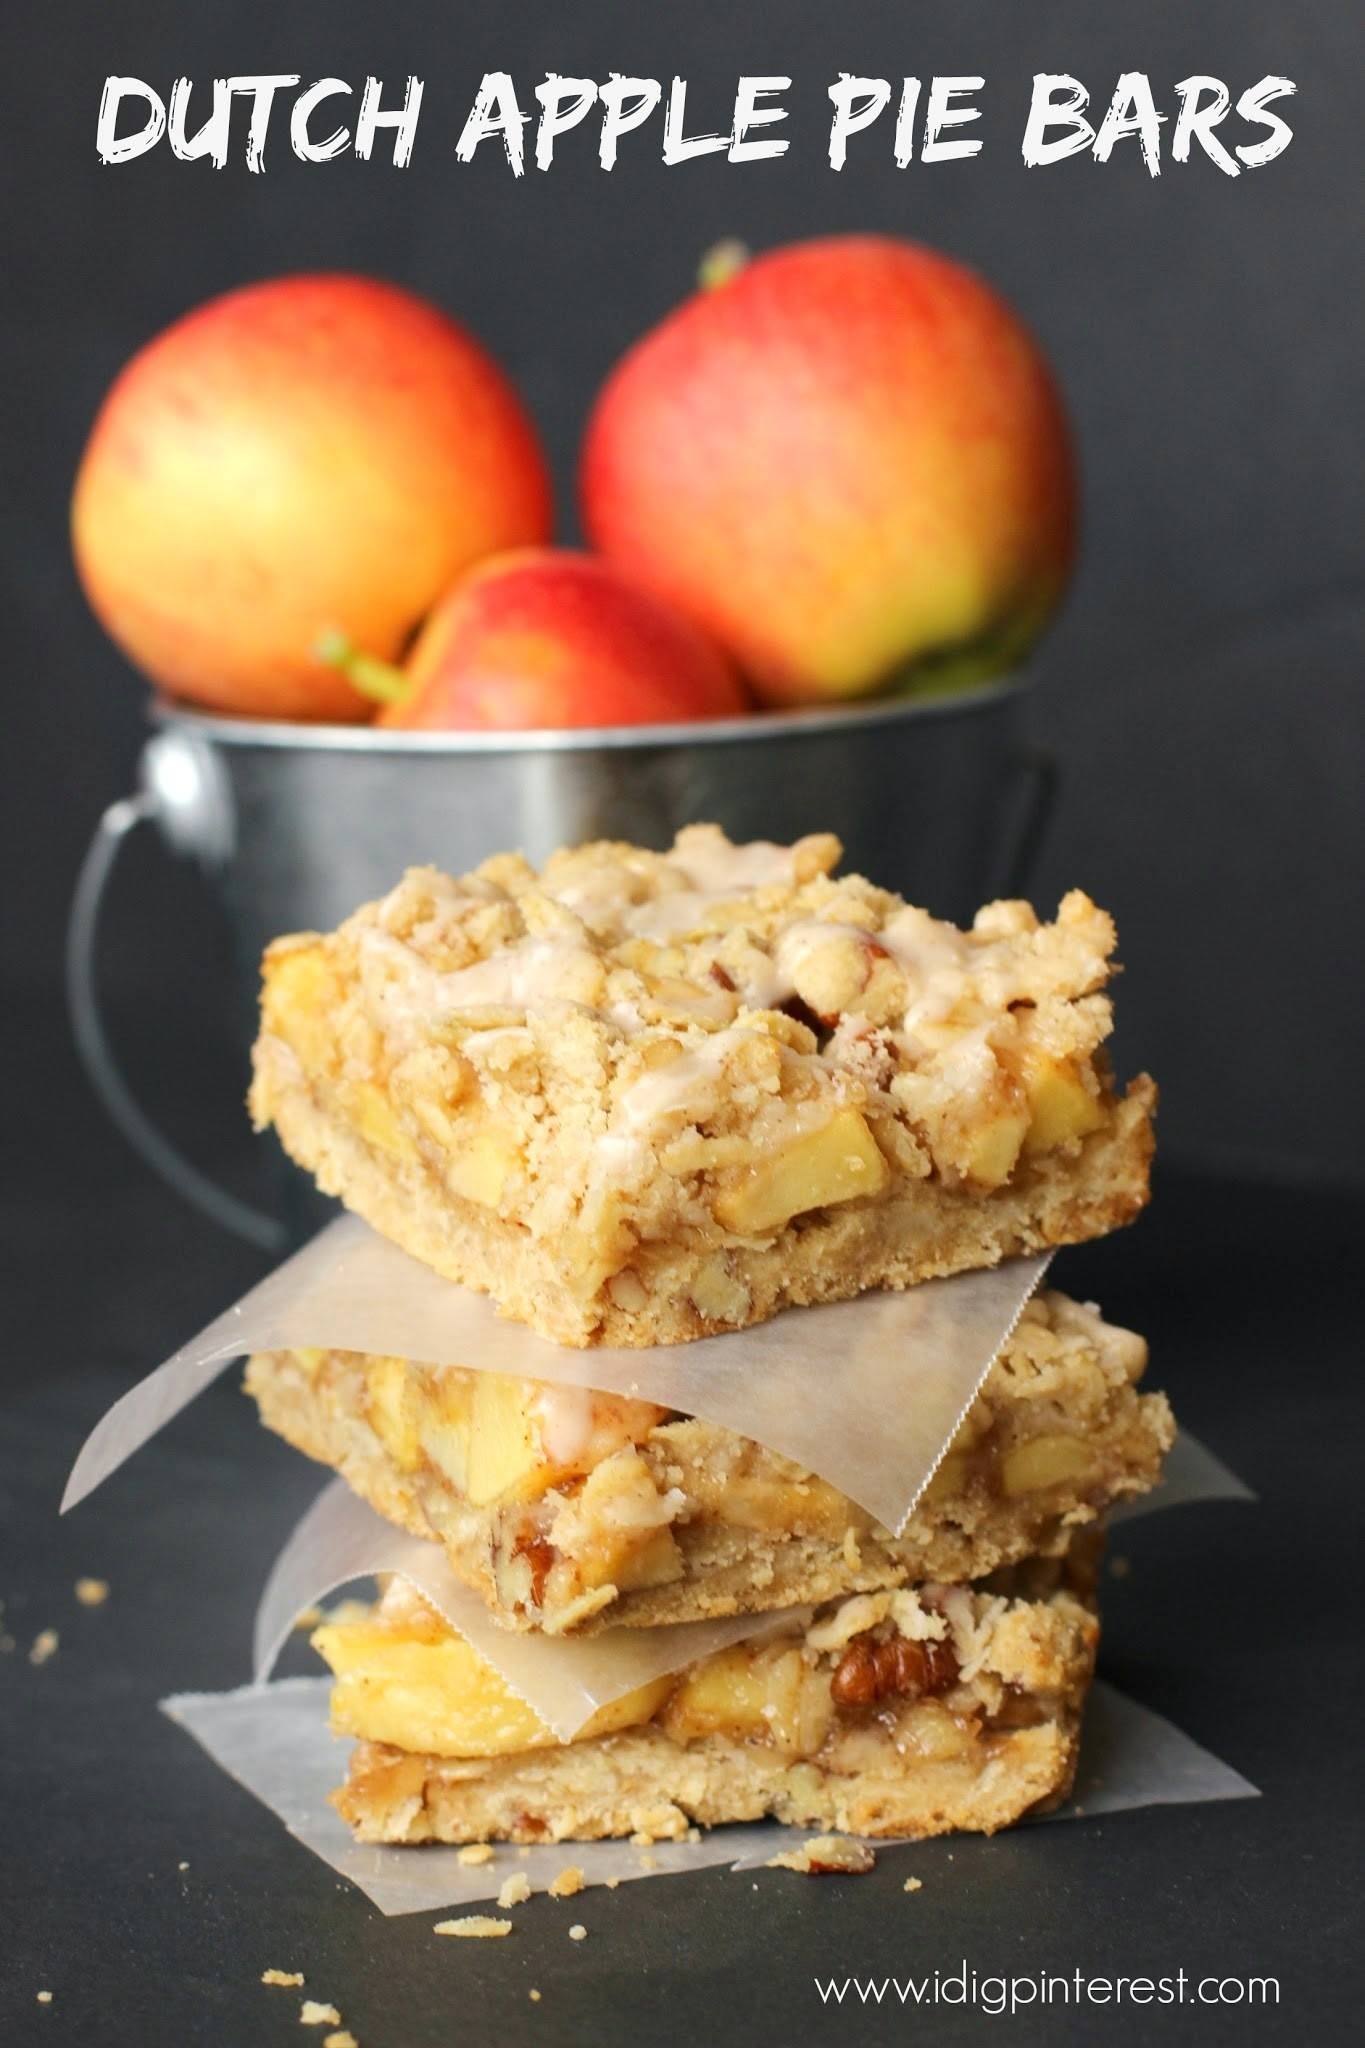 Dutch Apple Pie Bars